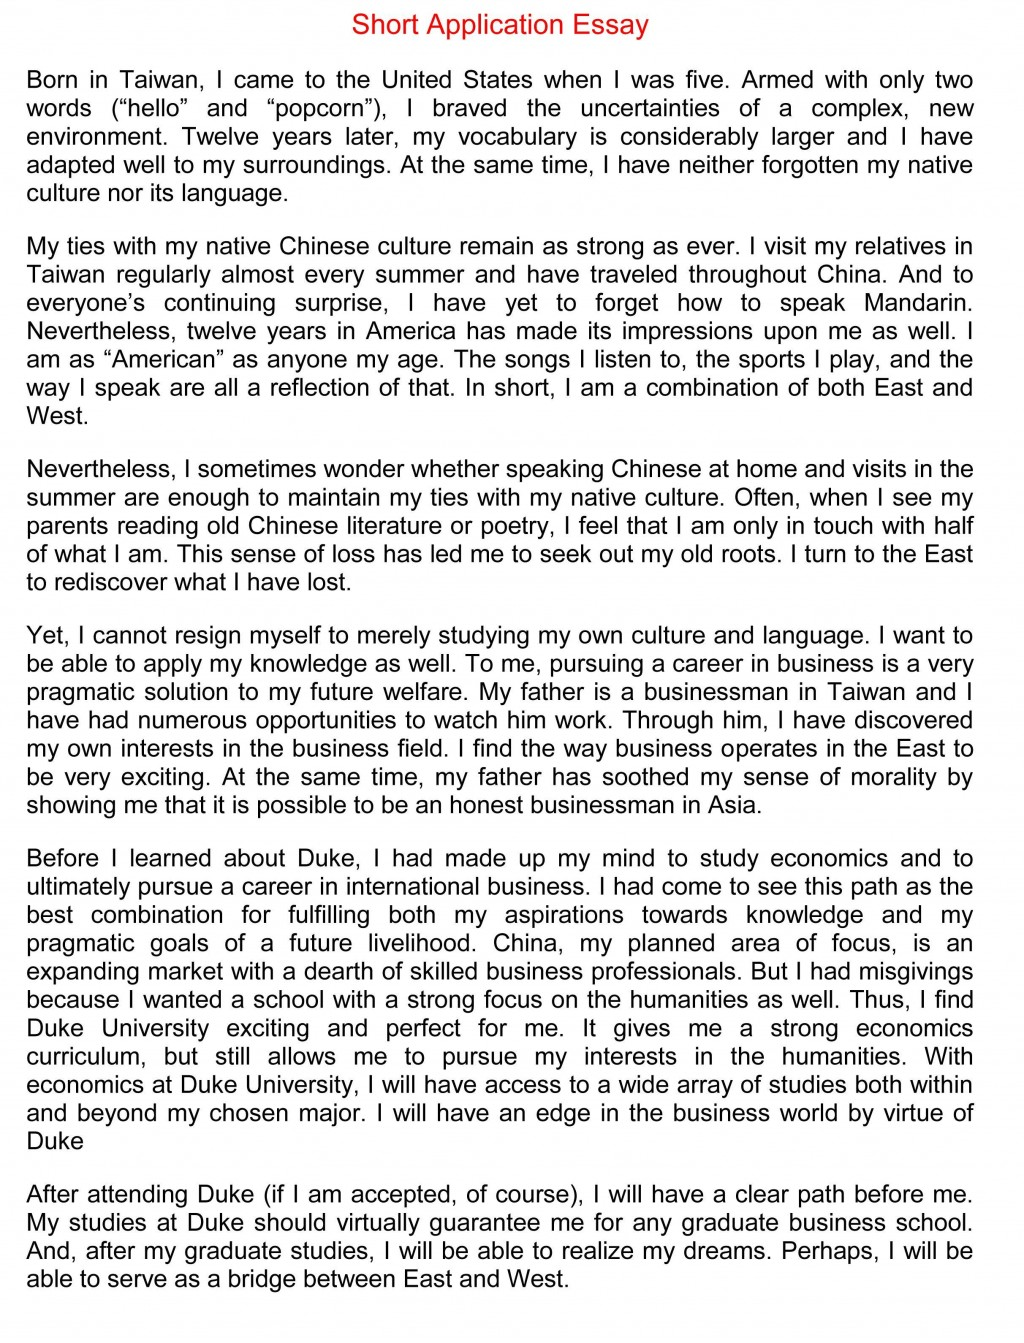 008 Essay Example On Punctuality And Discipline Short Stunning Large